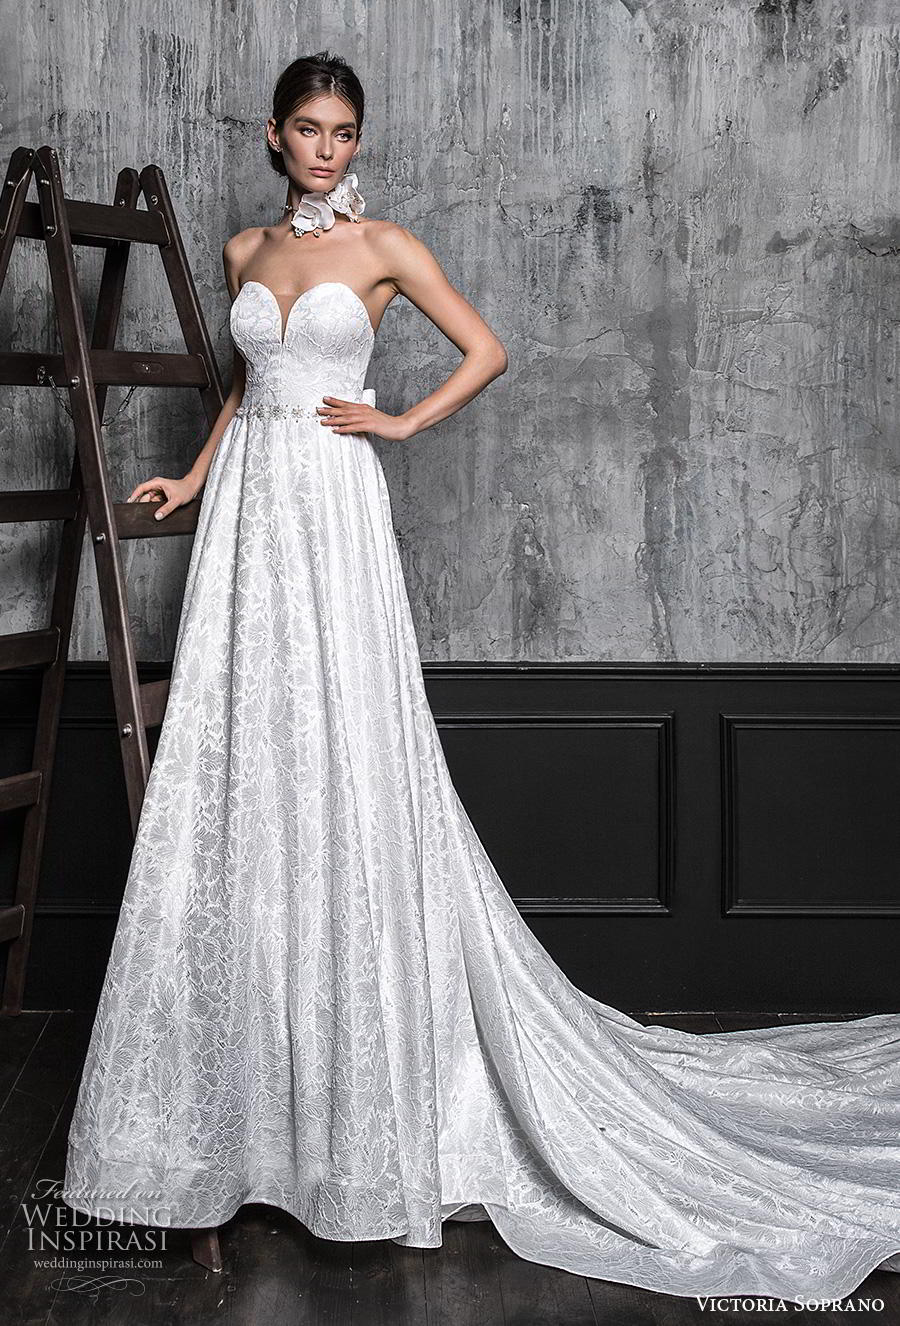 victoria soprano 2020 bridal strapless deep plunging sweetheart neckline full embellishment glamorous elegant a line wedding dress chapel train (16) mv